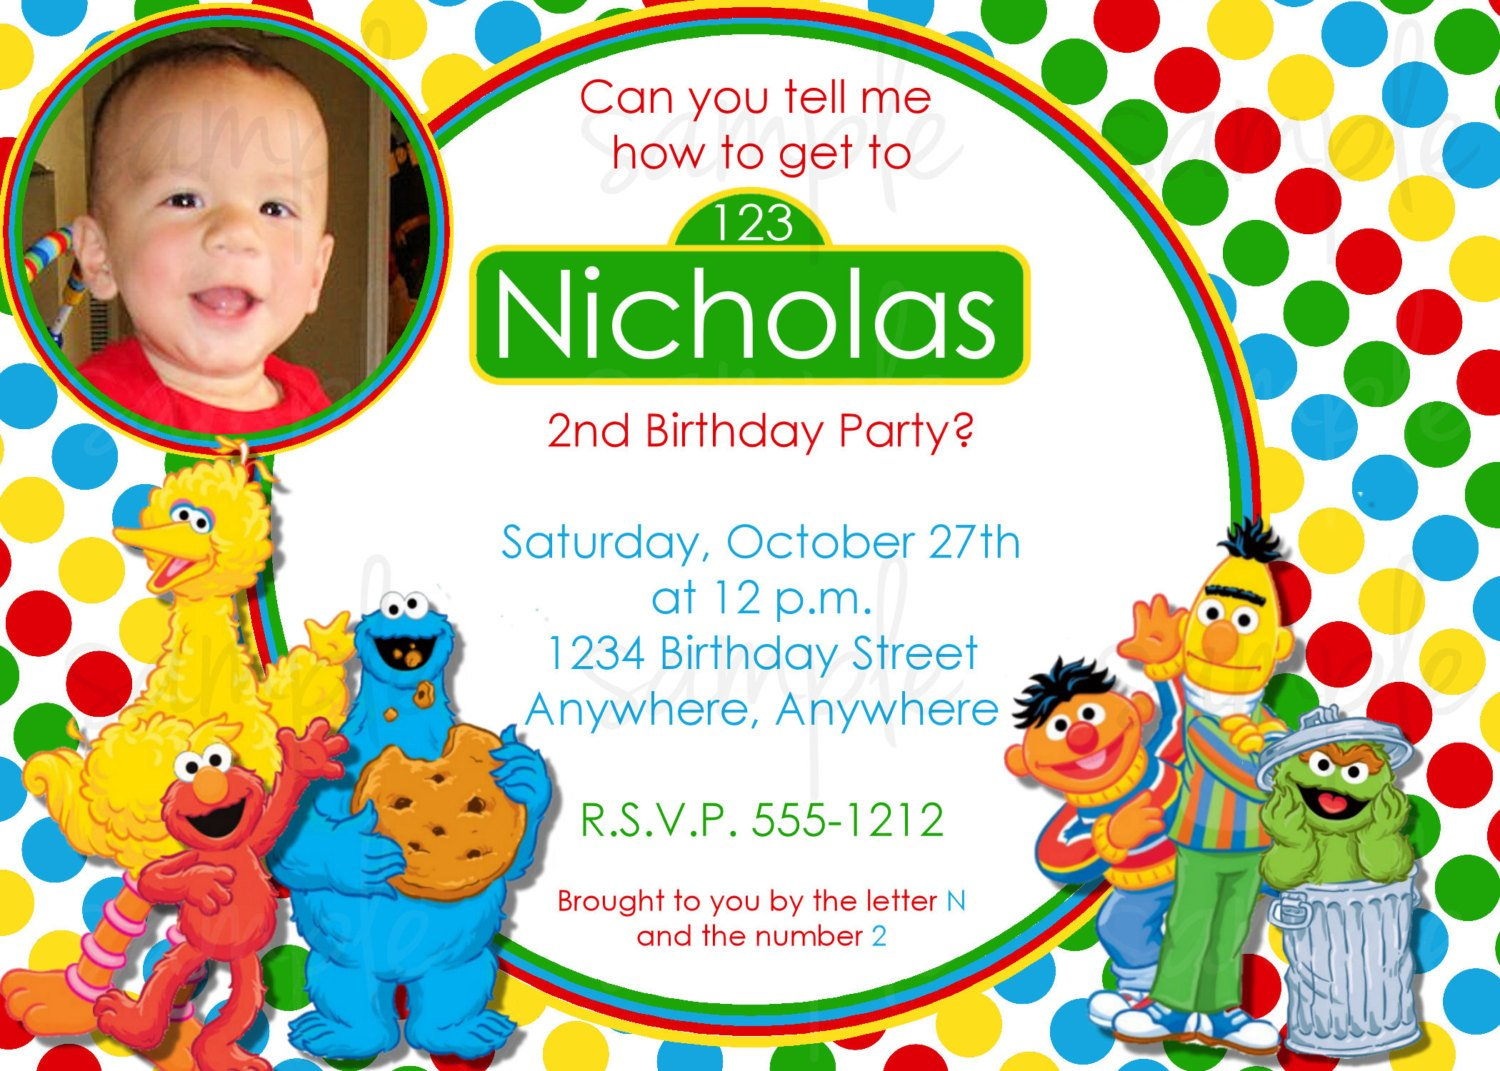 personalized invitation sesame street birthday invitation elmo invitation greeting cards party supply henrikhakansson greeting cards invitations